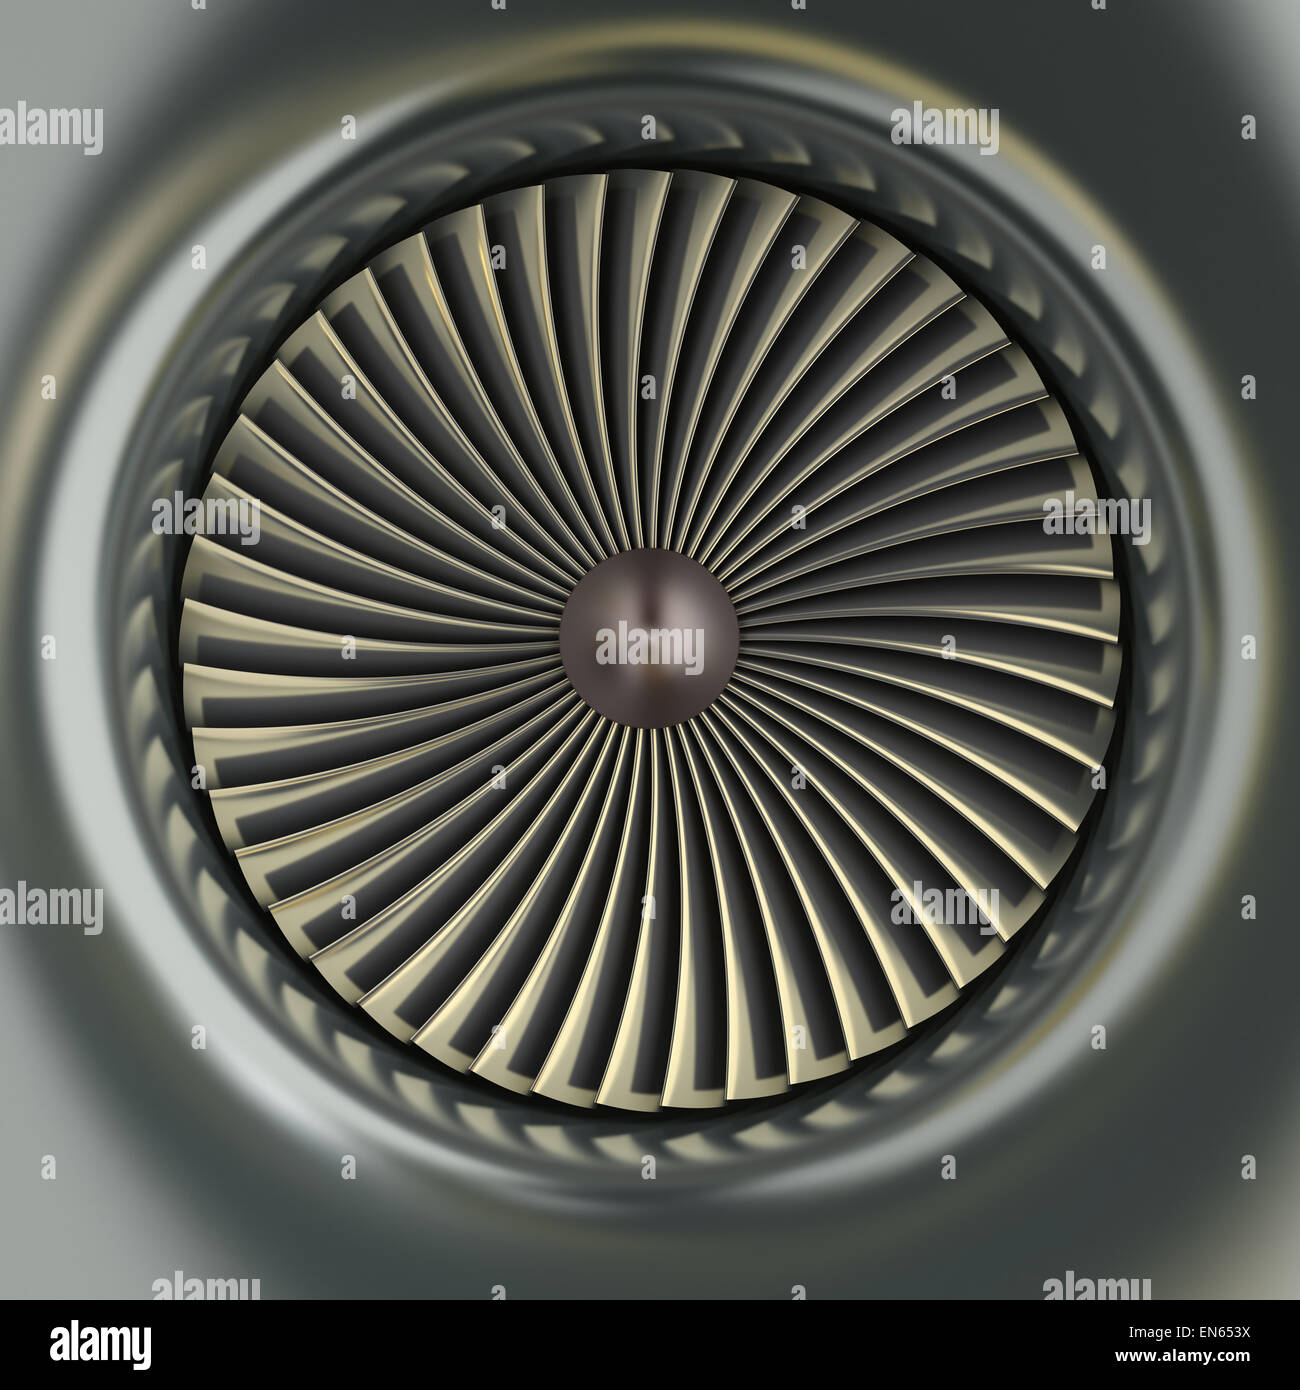 Gas Turbine Jet Engine - Stock Image